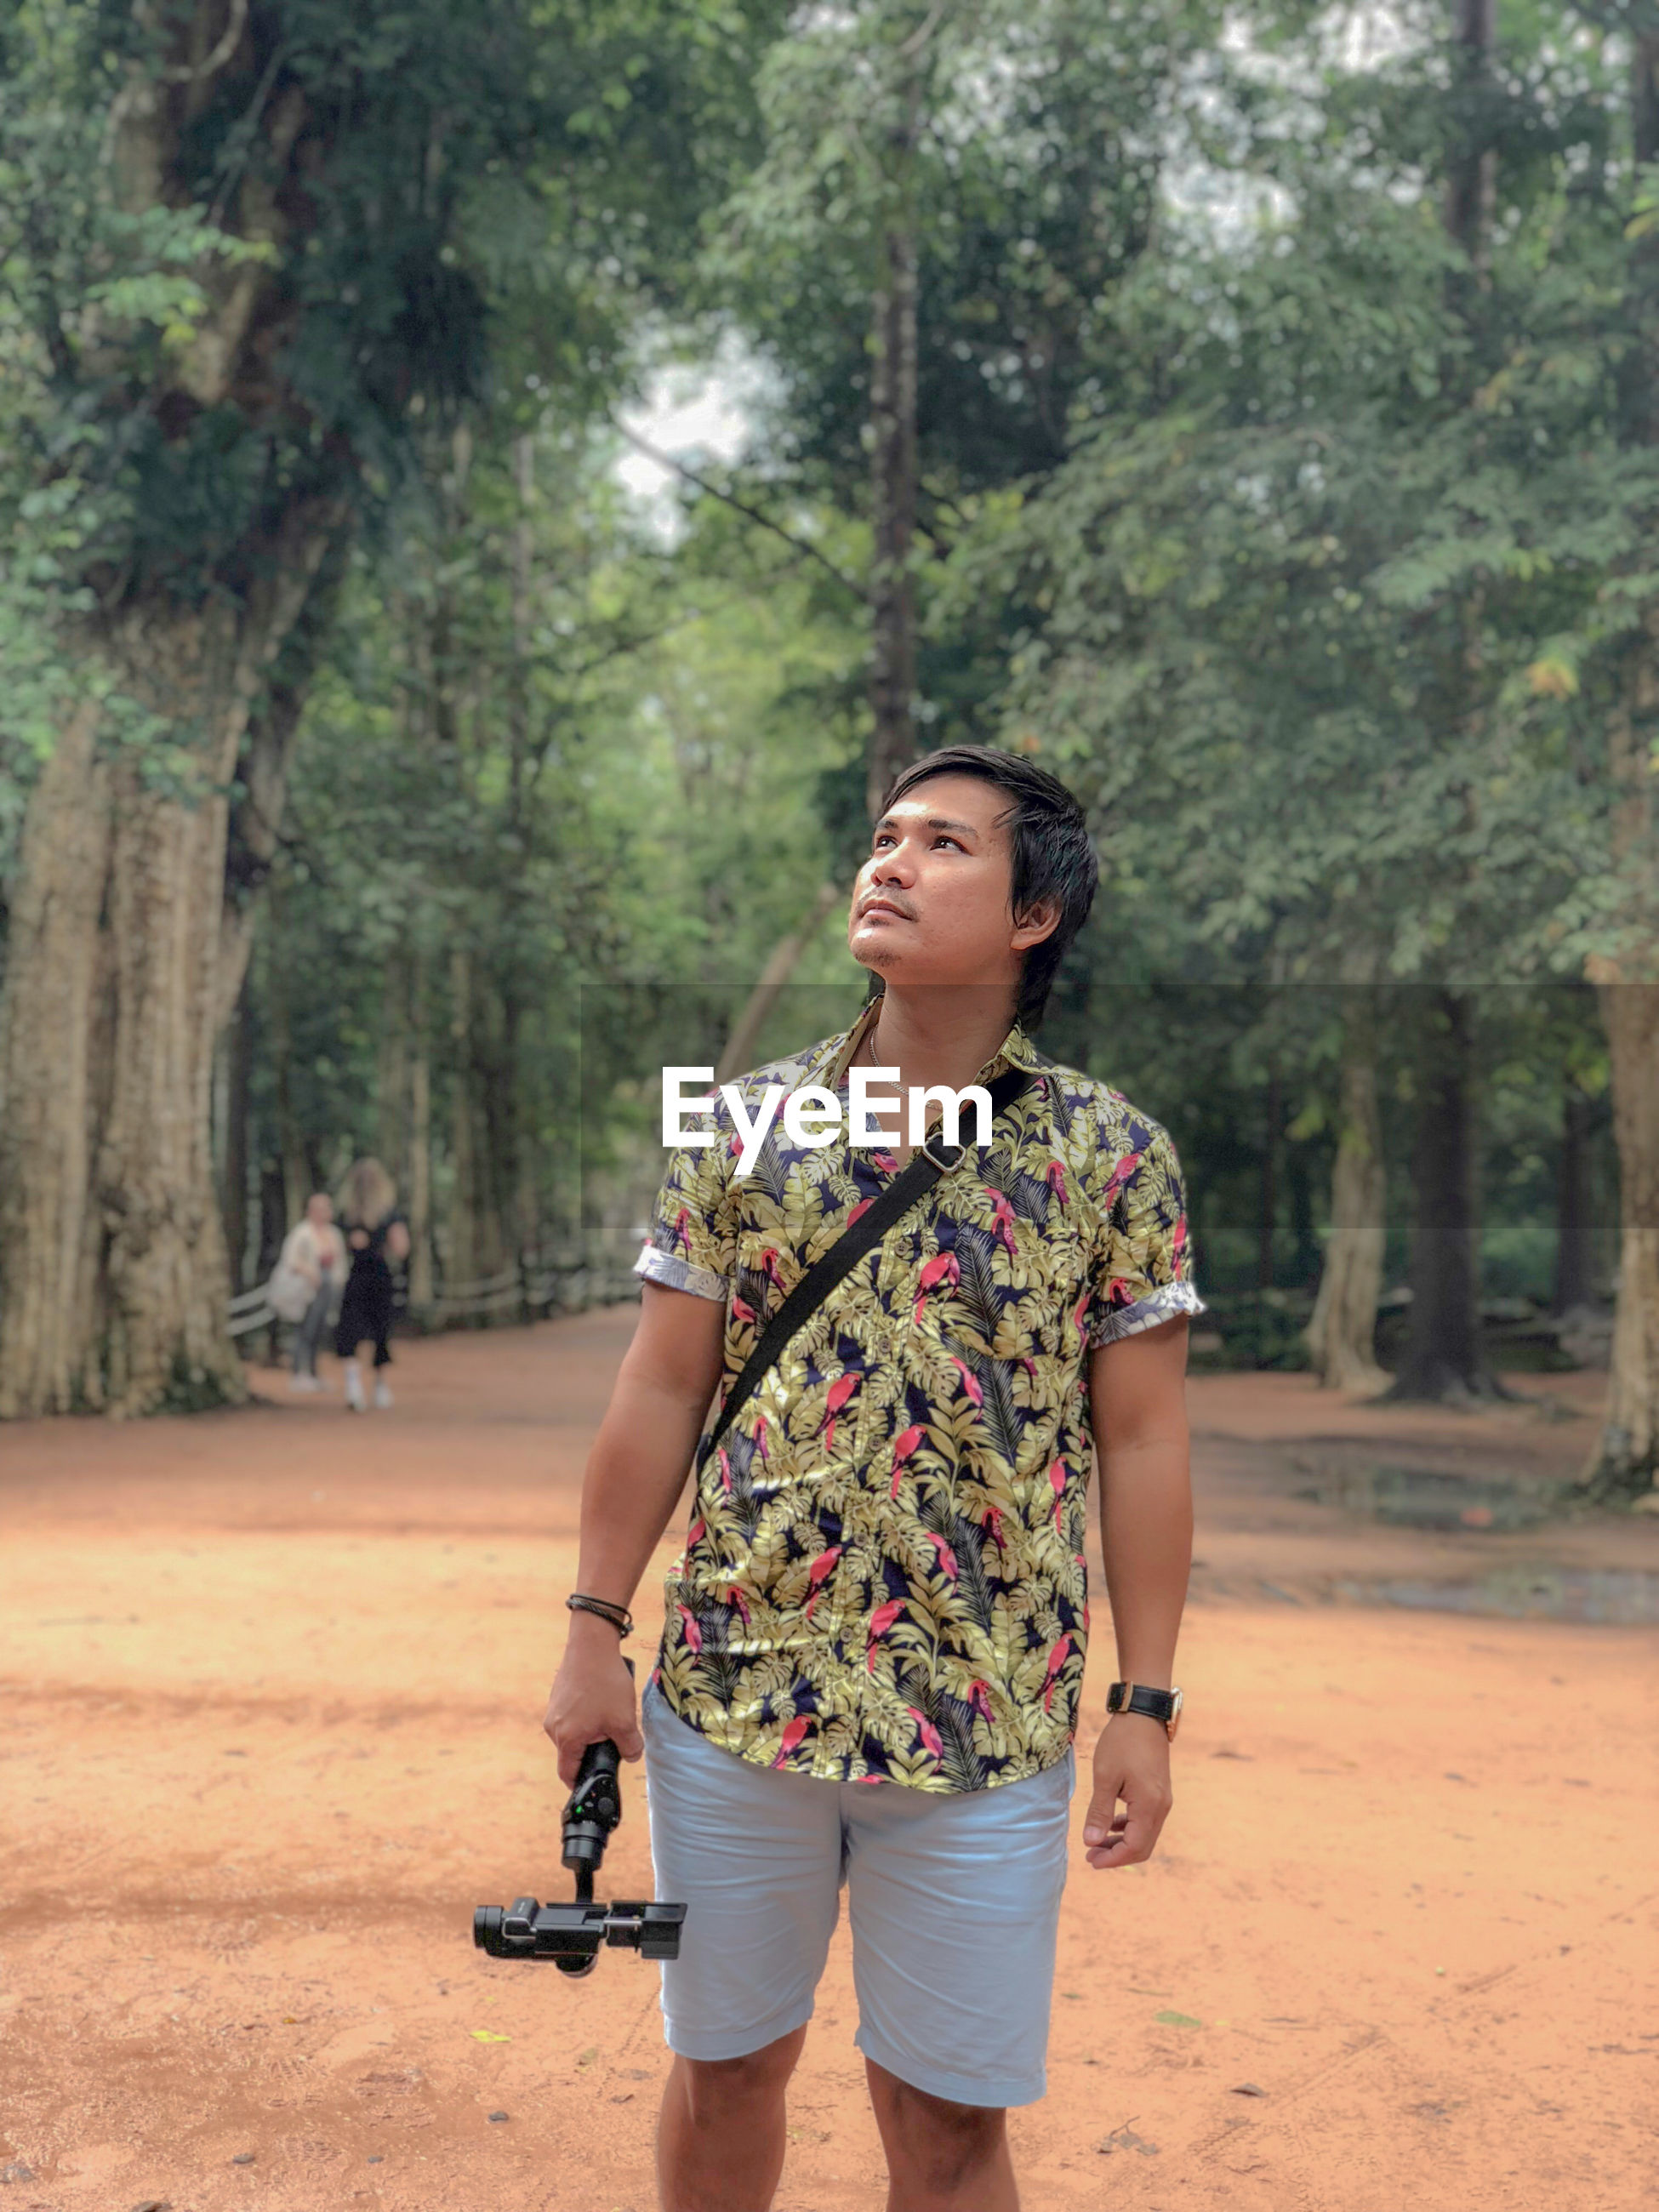 Man looking up while holding tripod in forest